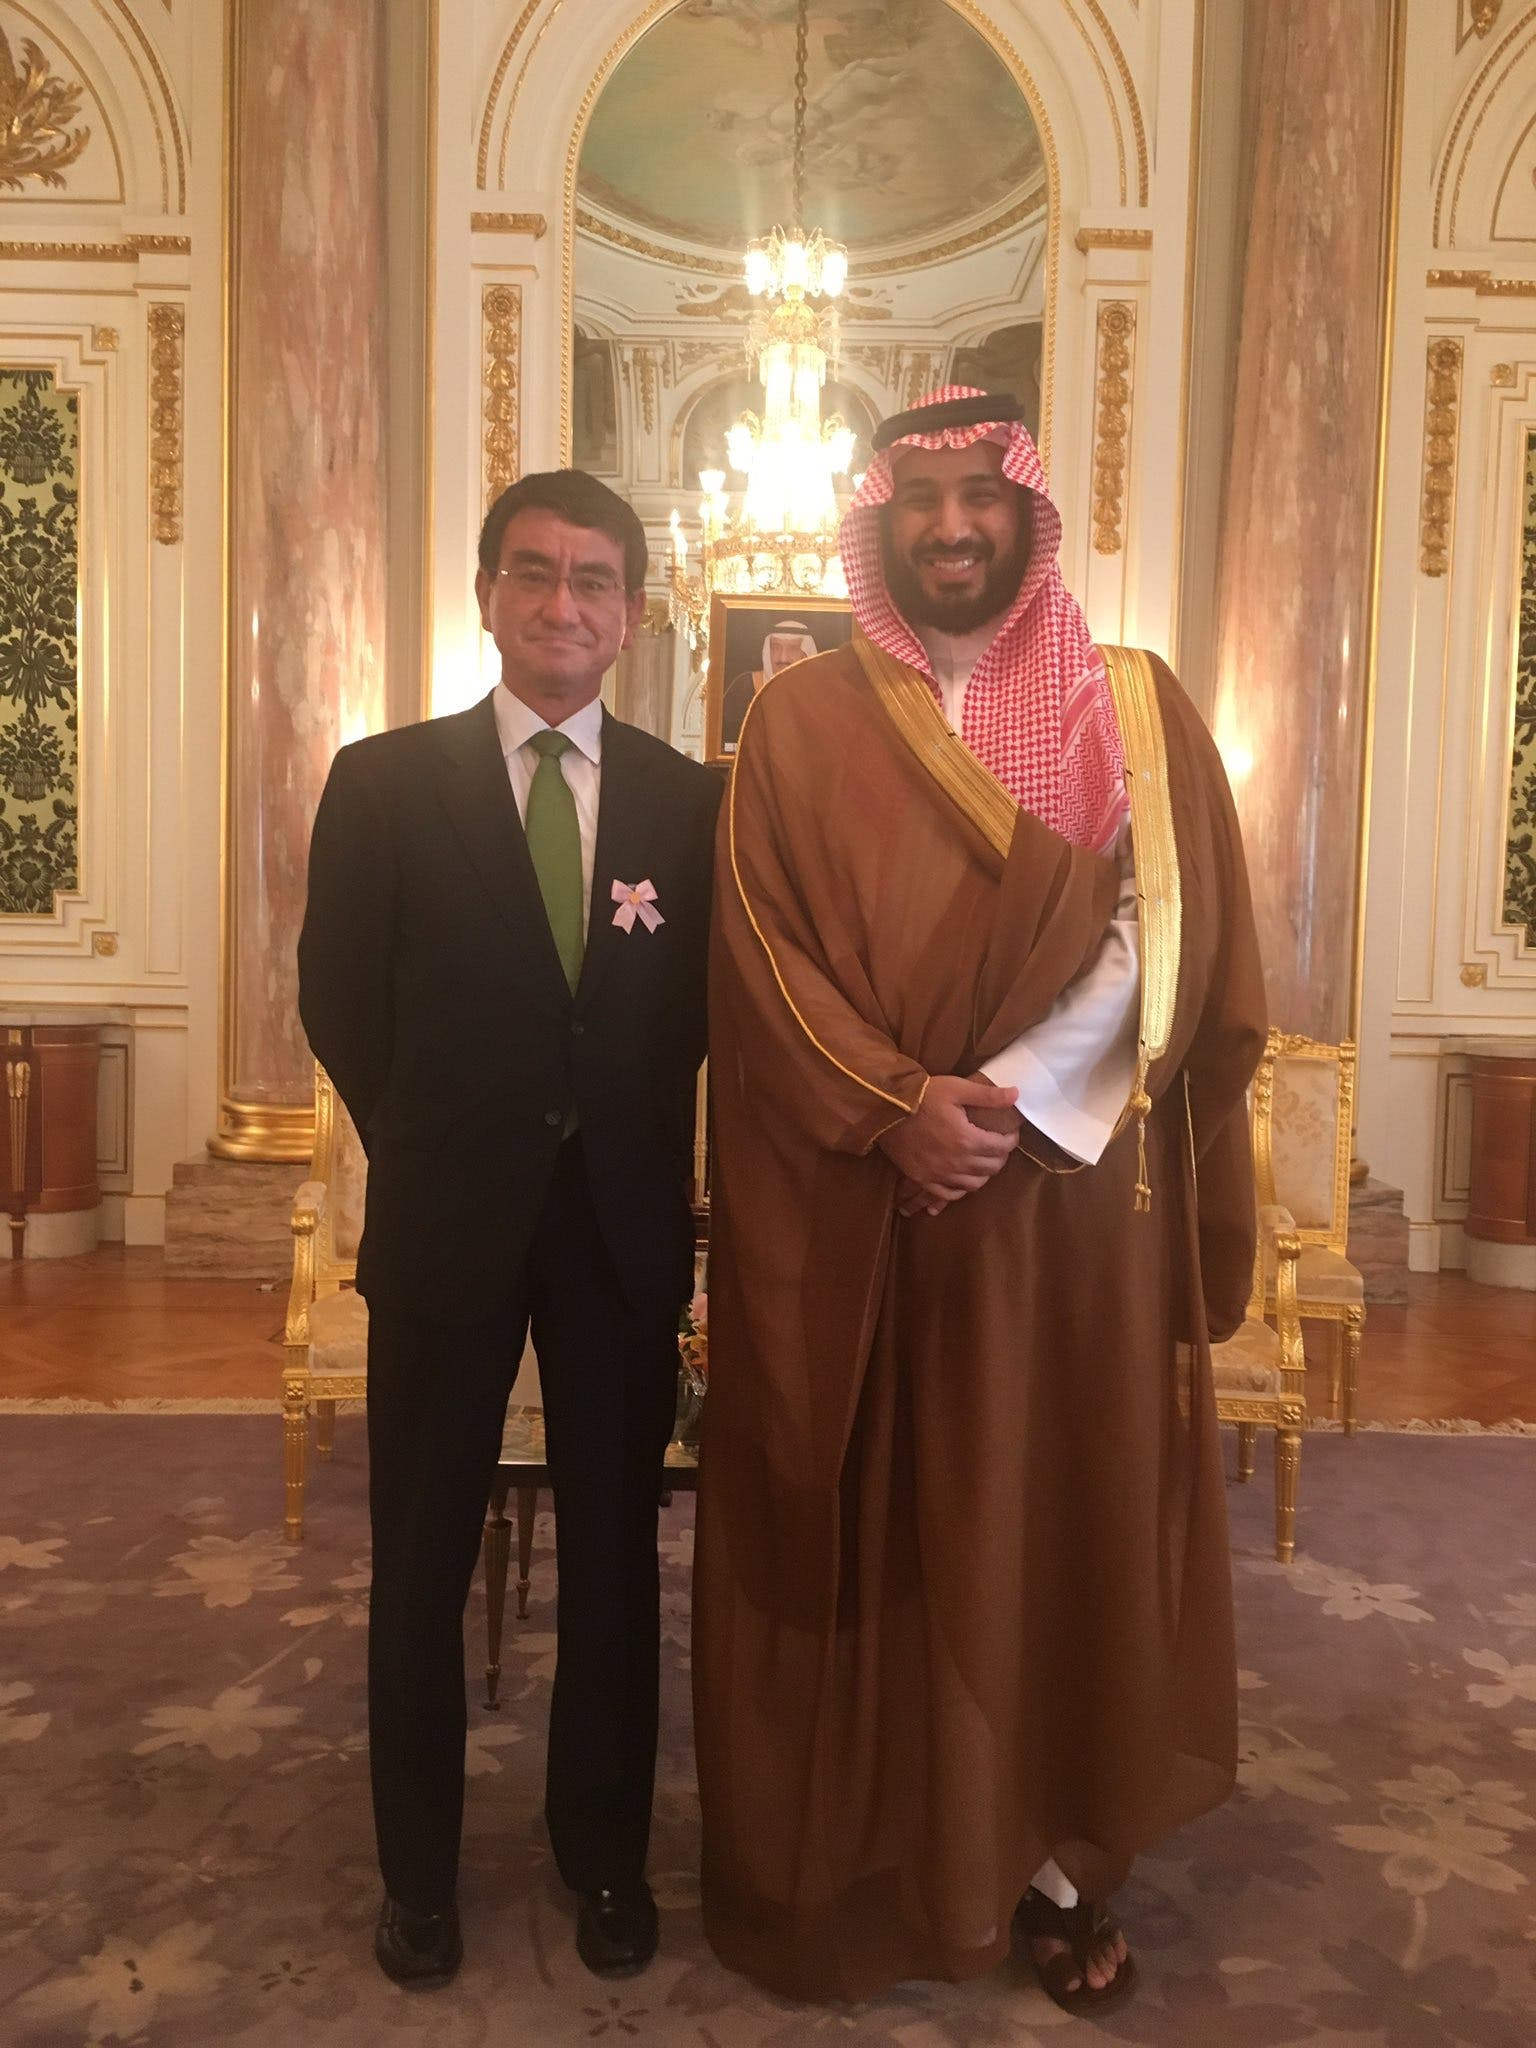 A picture posted on Twitter by Taro Kono of his audience with HRH Prince Mohammad bin Salman post this interview (Twitter)